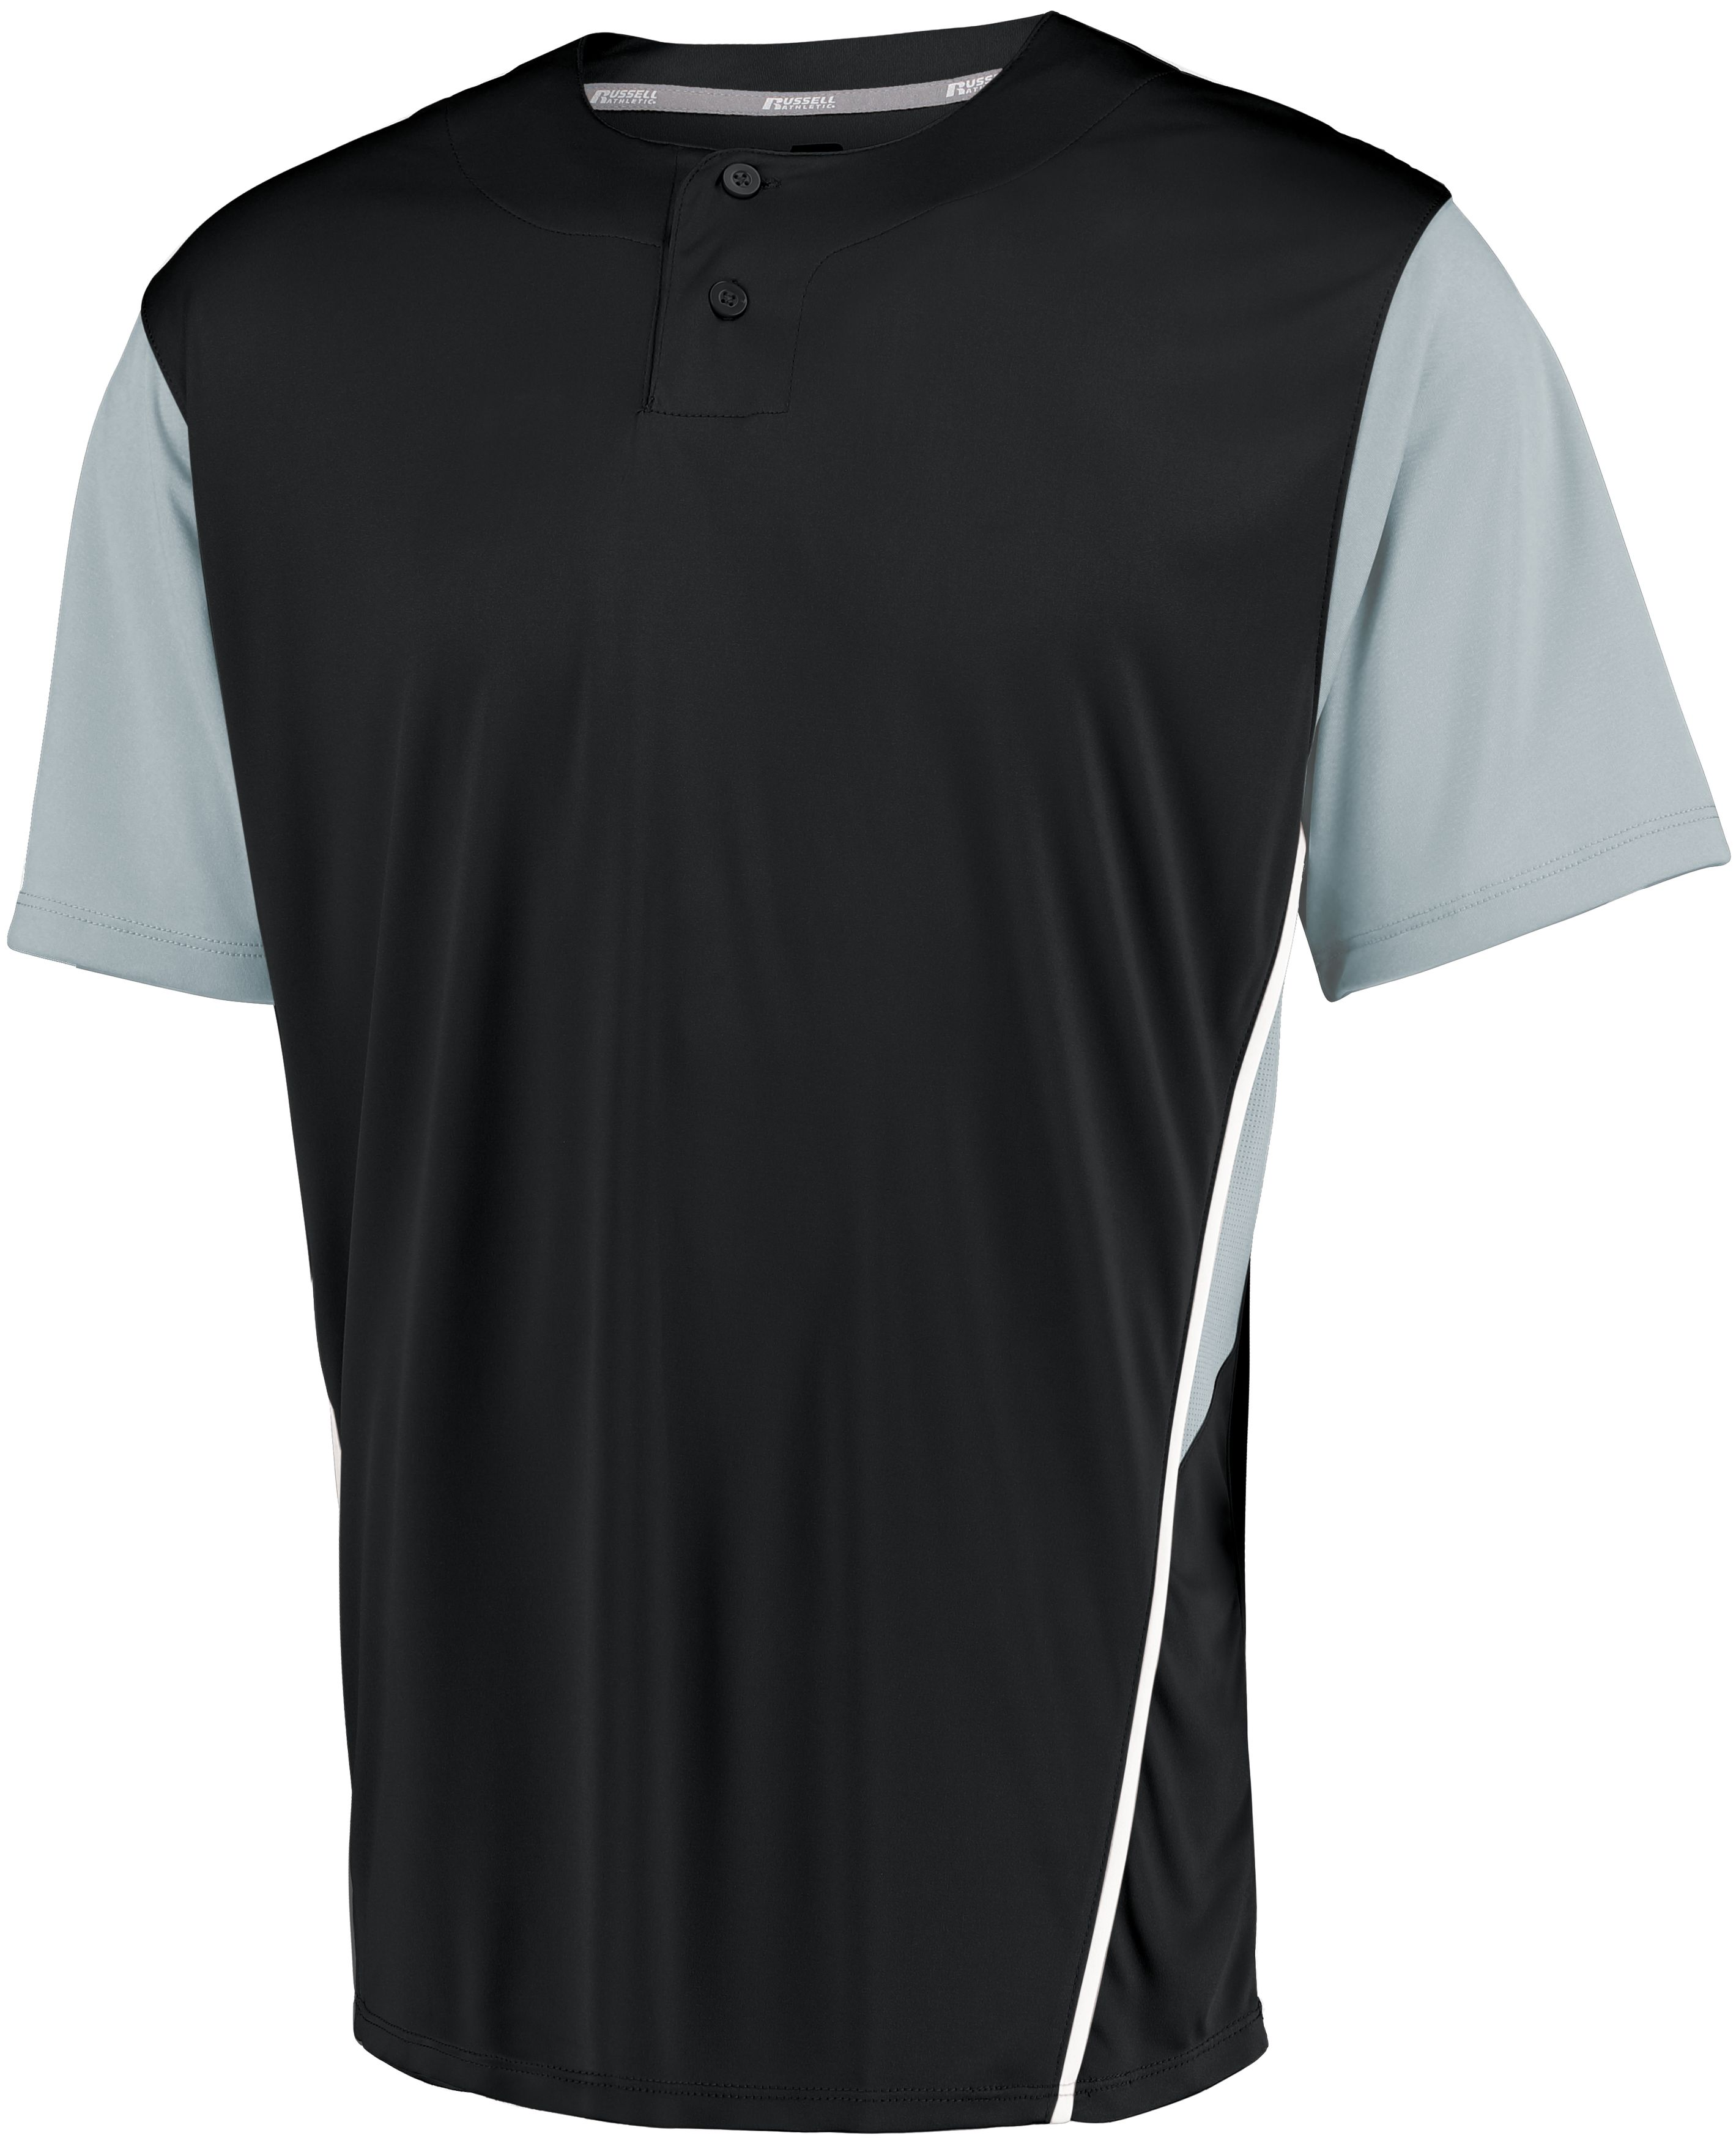 Youth Two-Button Placket Jersey - Black/baseball Grey